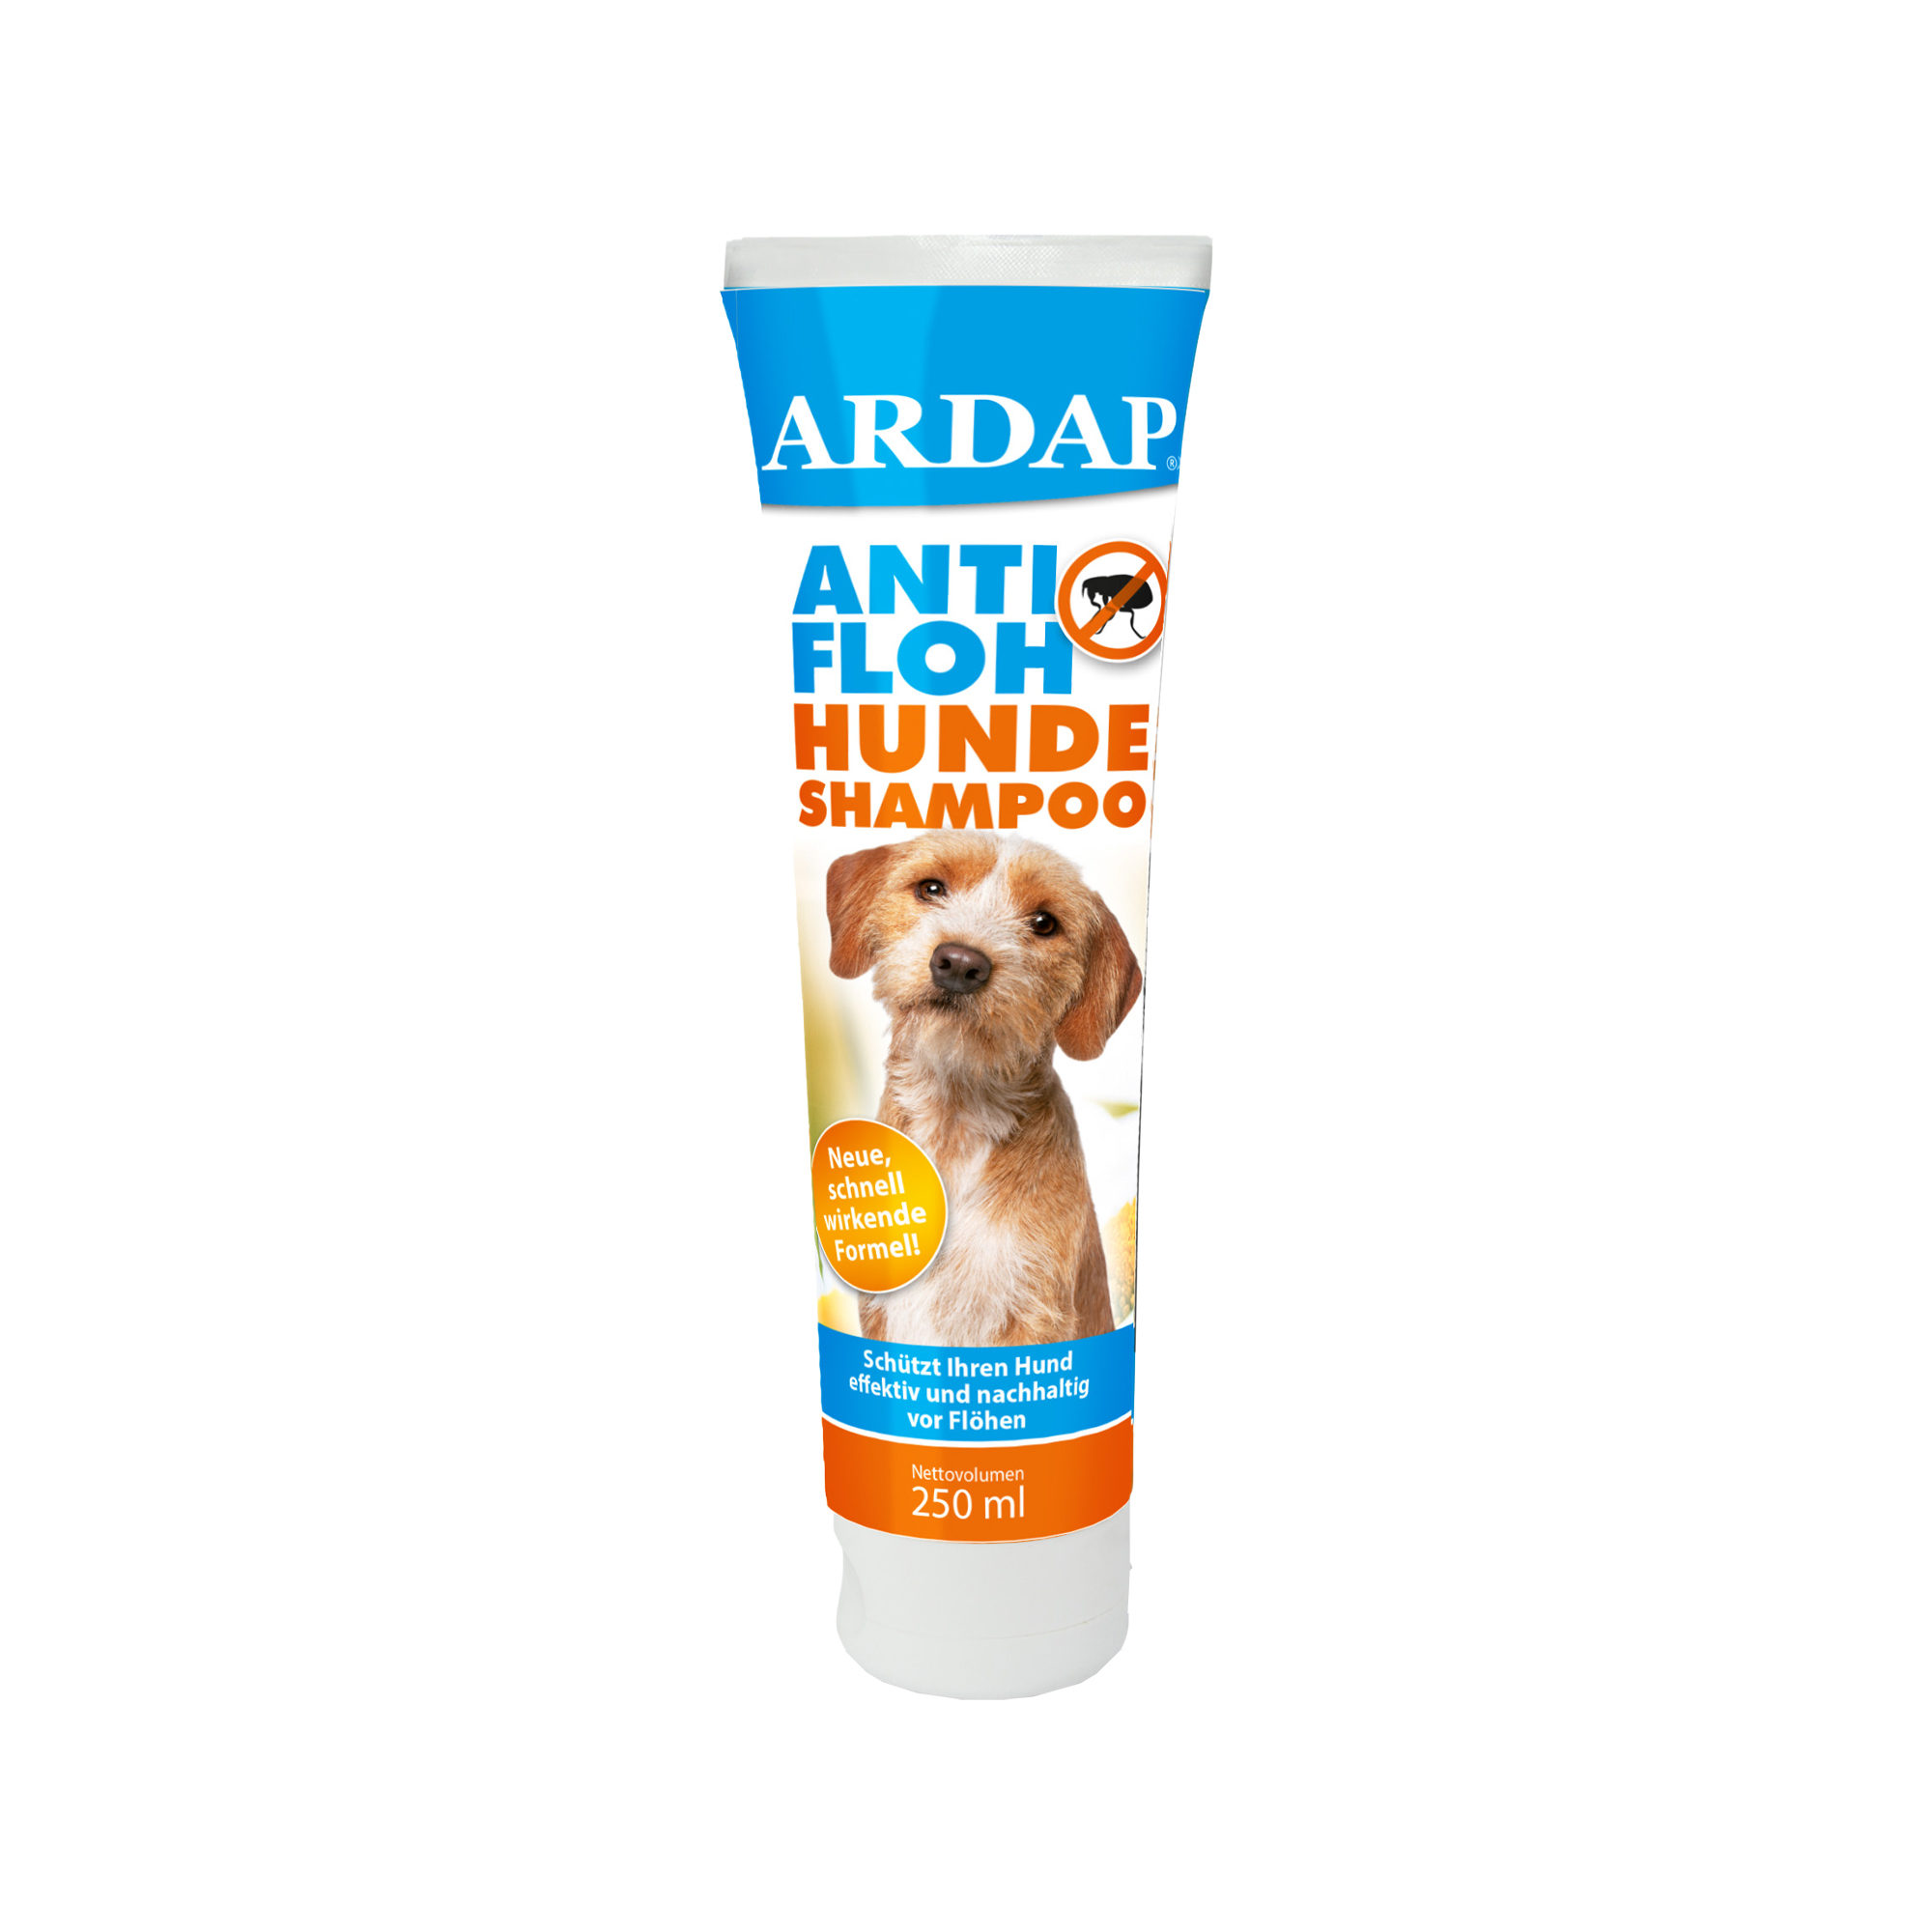 Ardap Anti-Floh Shampoo - 250 ml